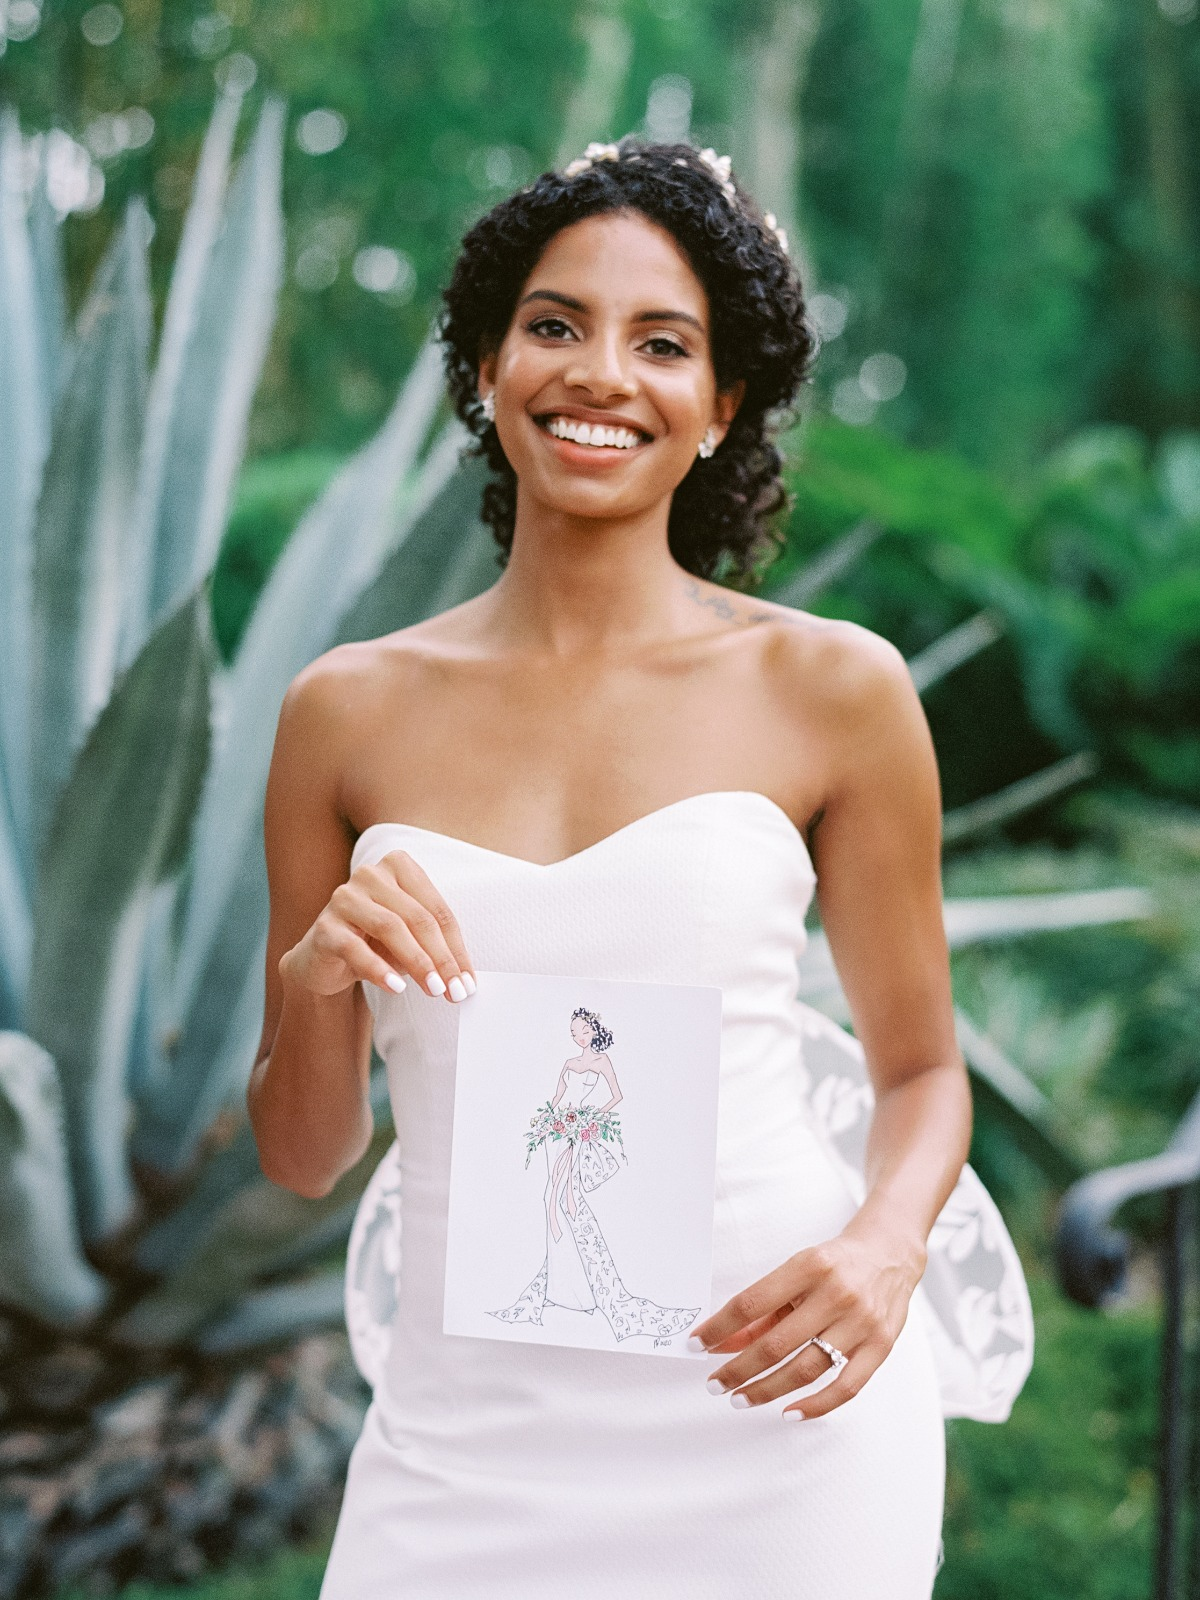 bride had a custom sketch drawn of her in her dress